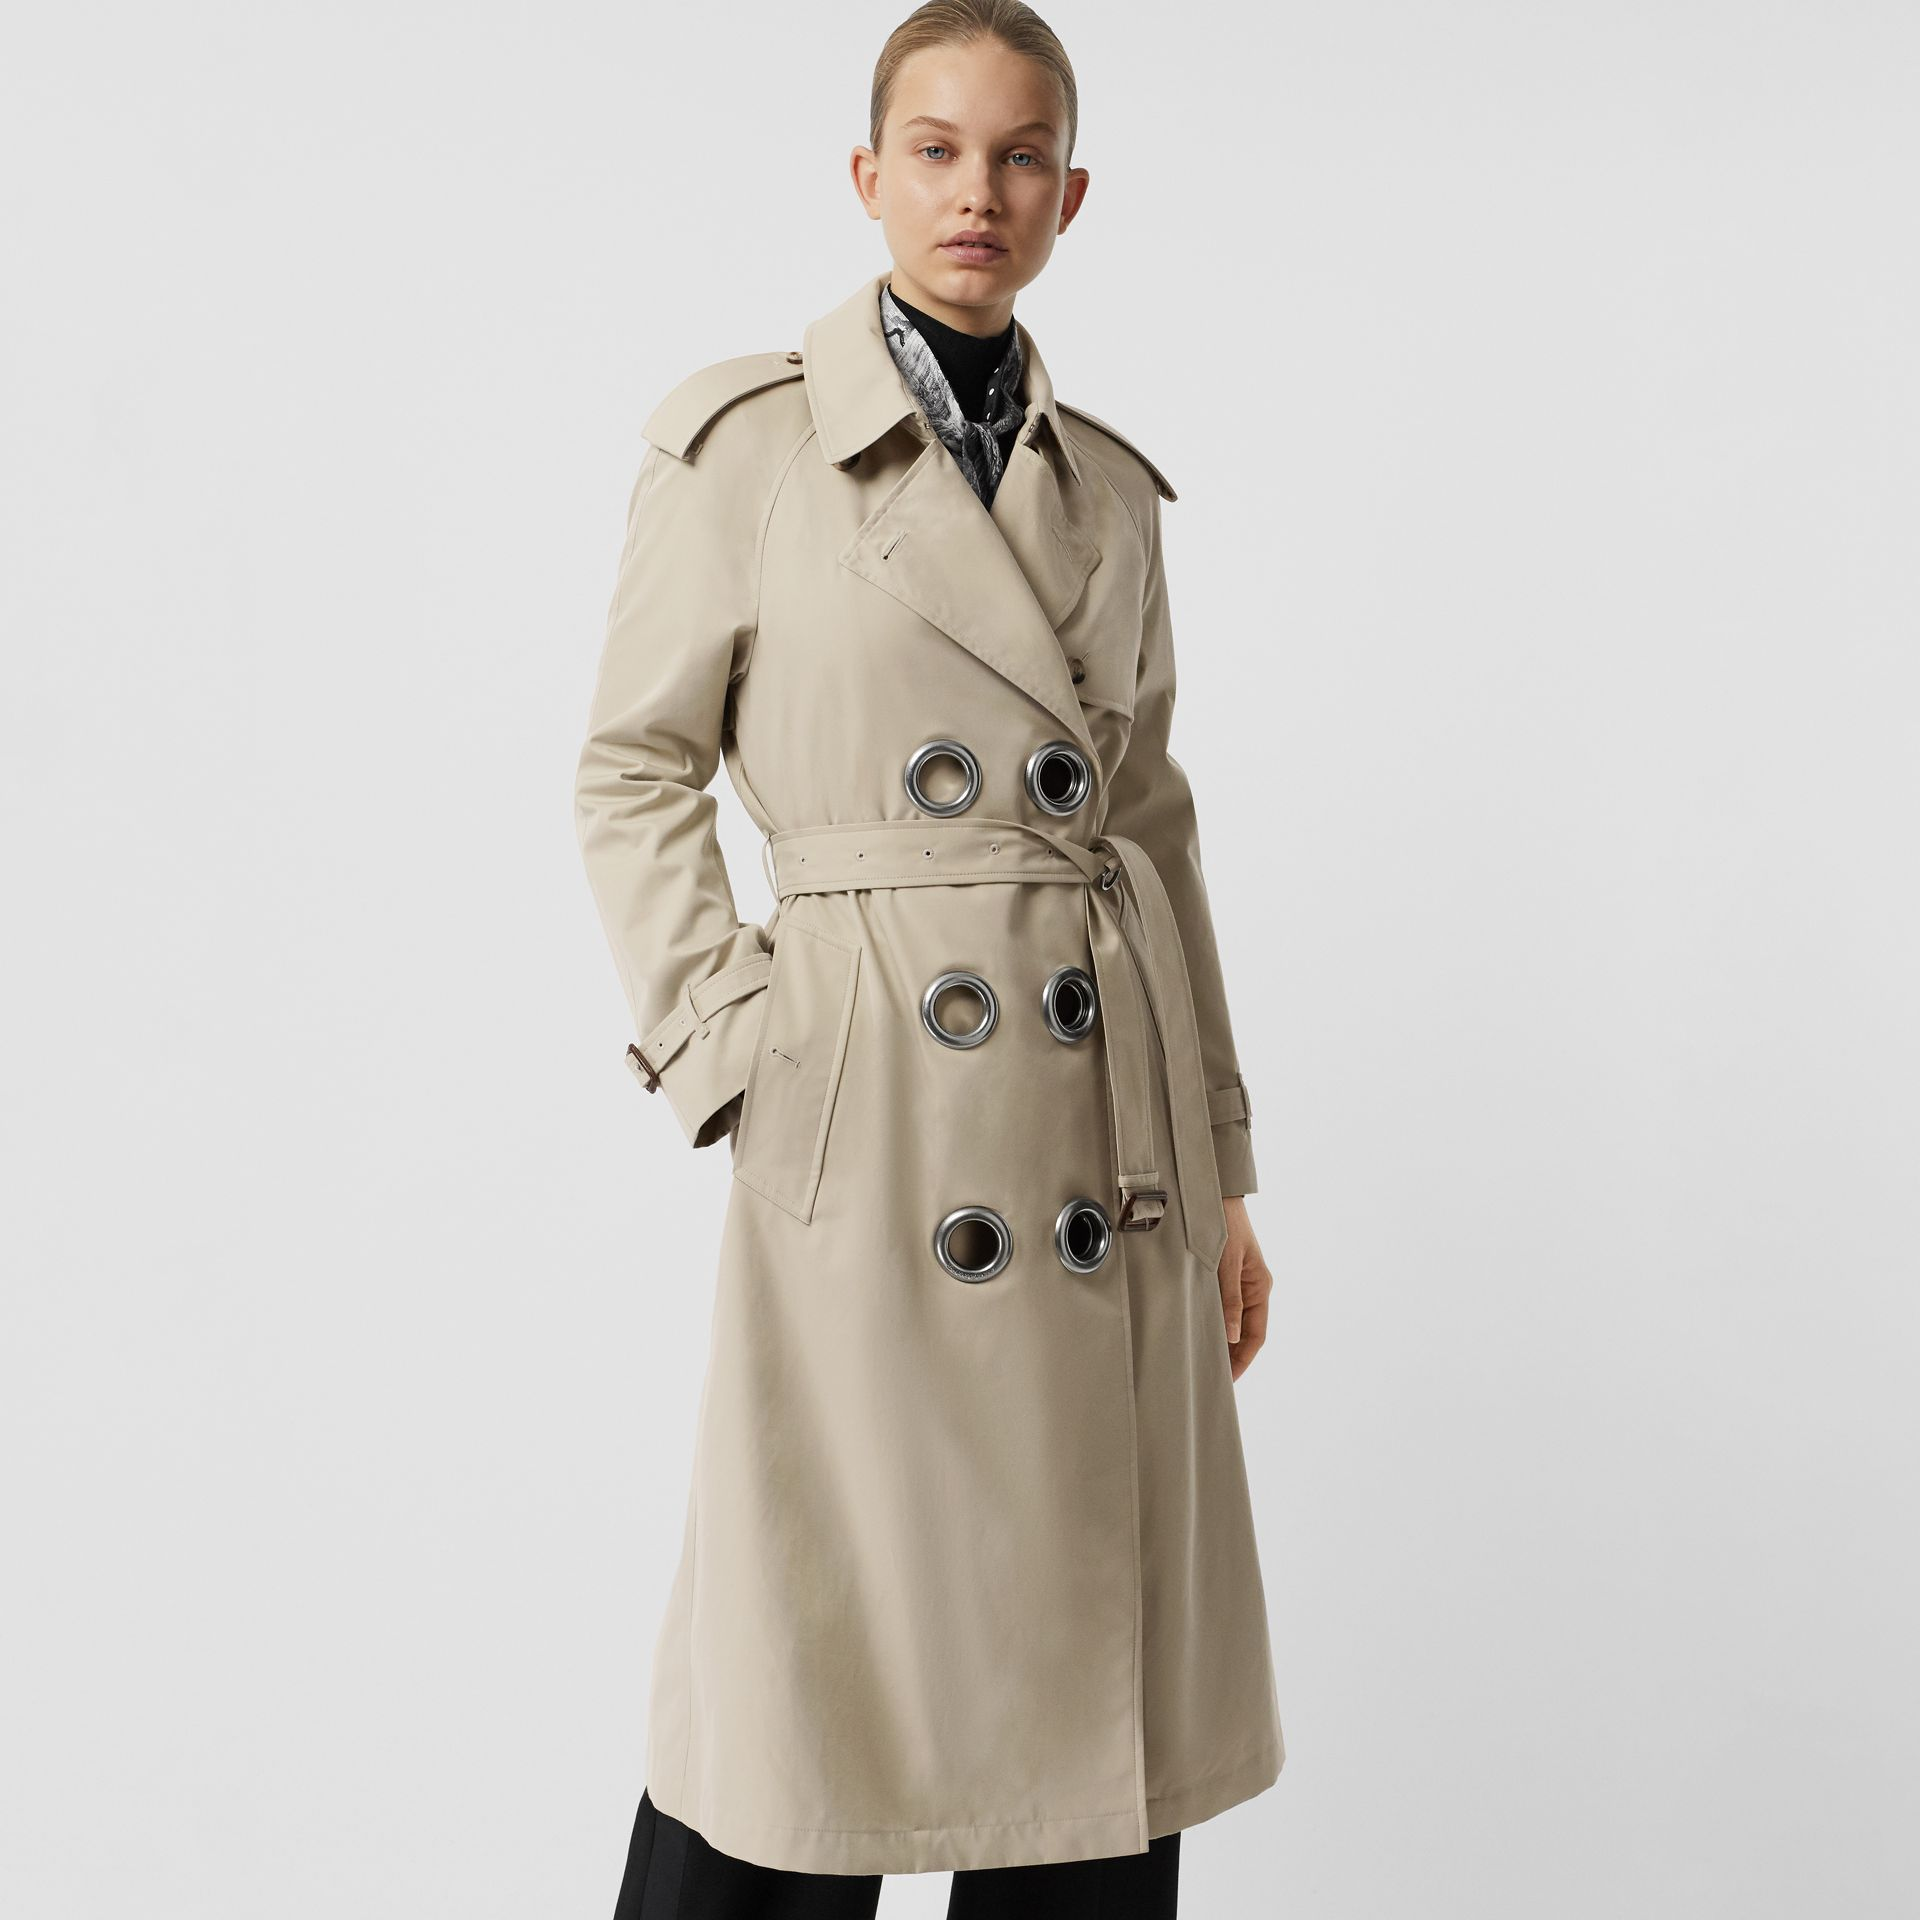 Grommet Detail Cotton Gabardine Trench Coat in Stone - Women | Burberry - gallery image 5